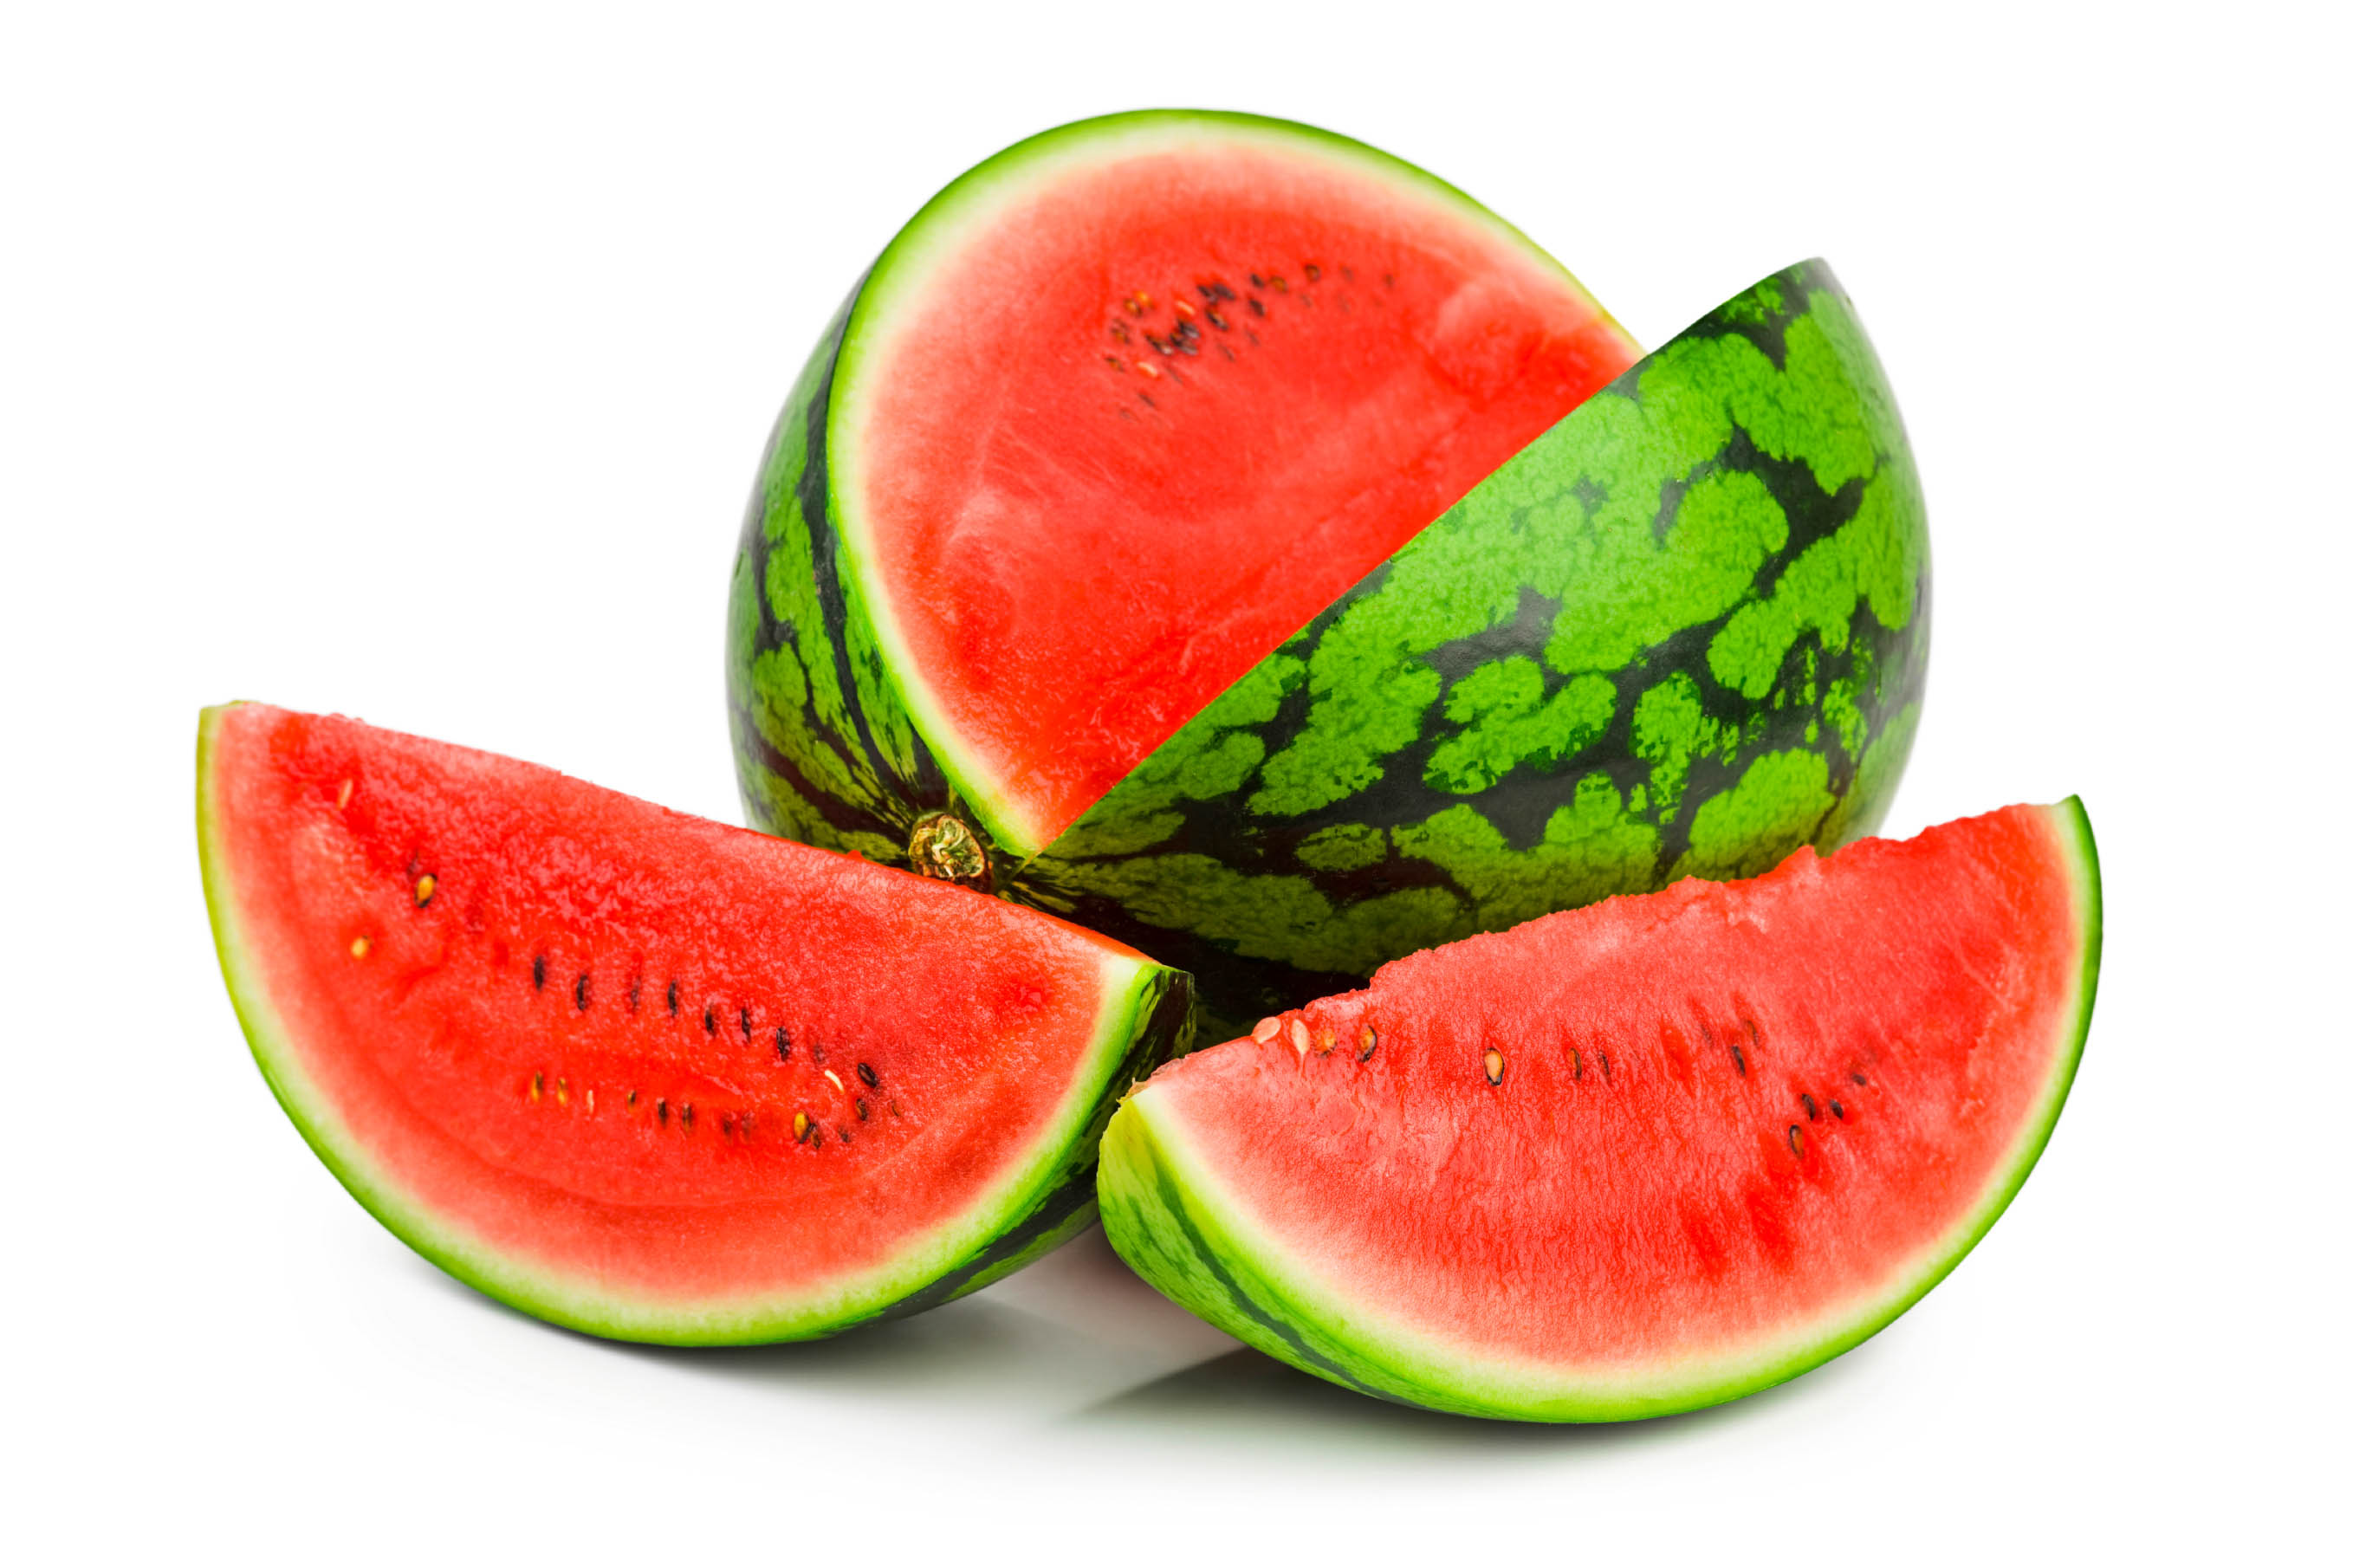 Watermelon good for vitamin c